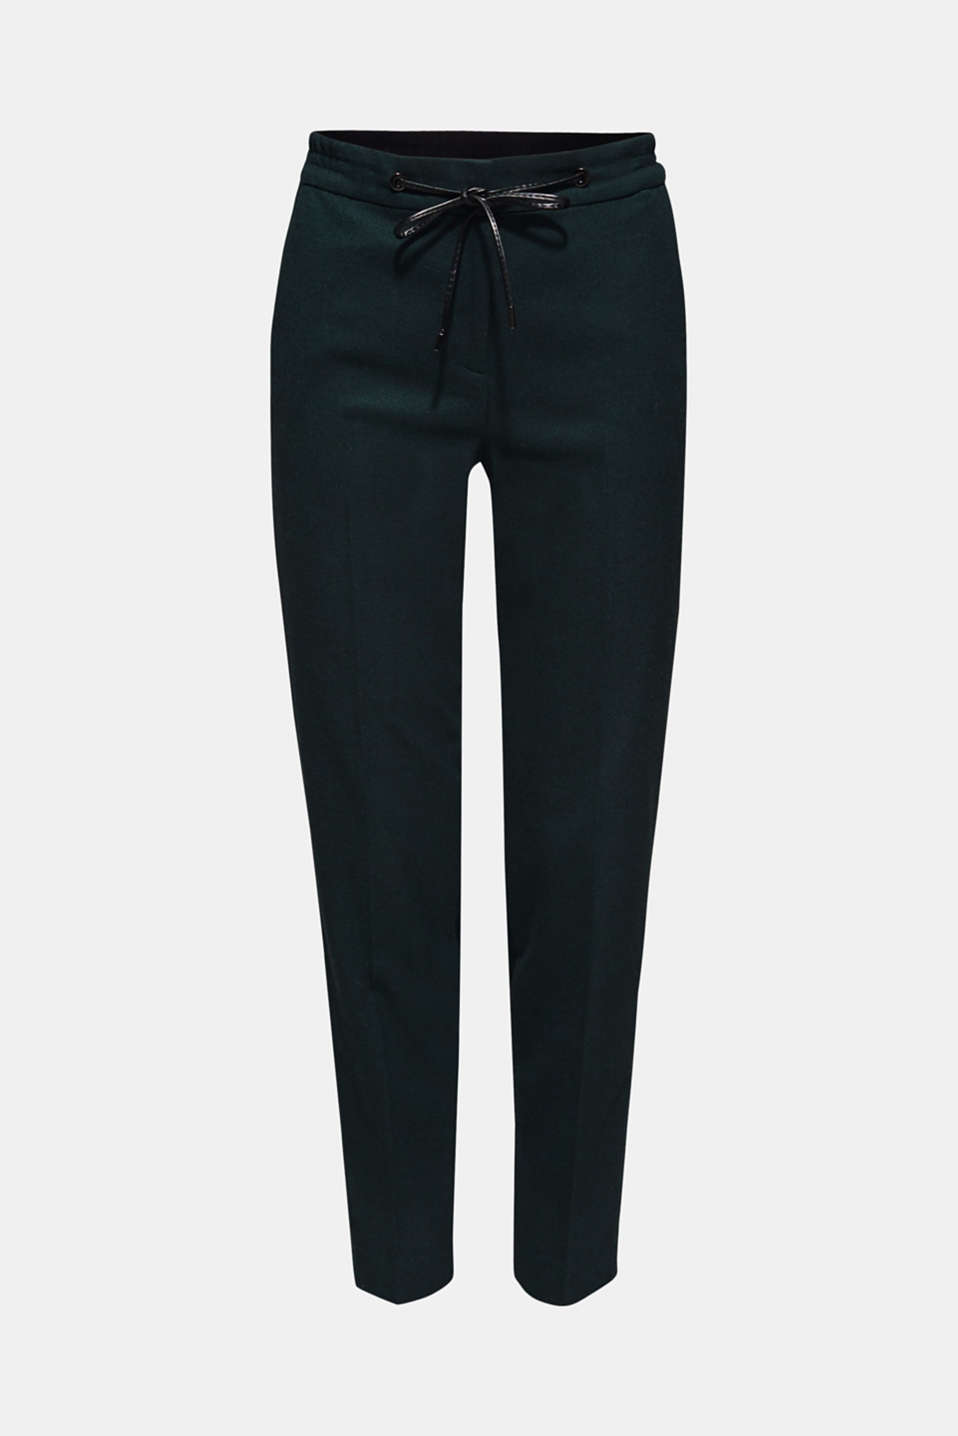 Flannel stretch trousers in a tracksuit bottom style, FOREST, detail image number 7